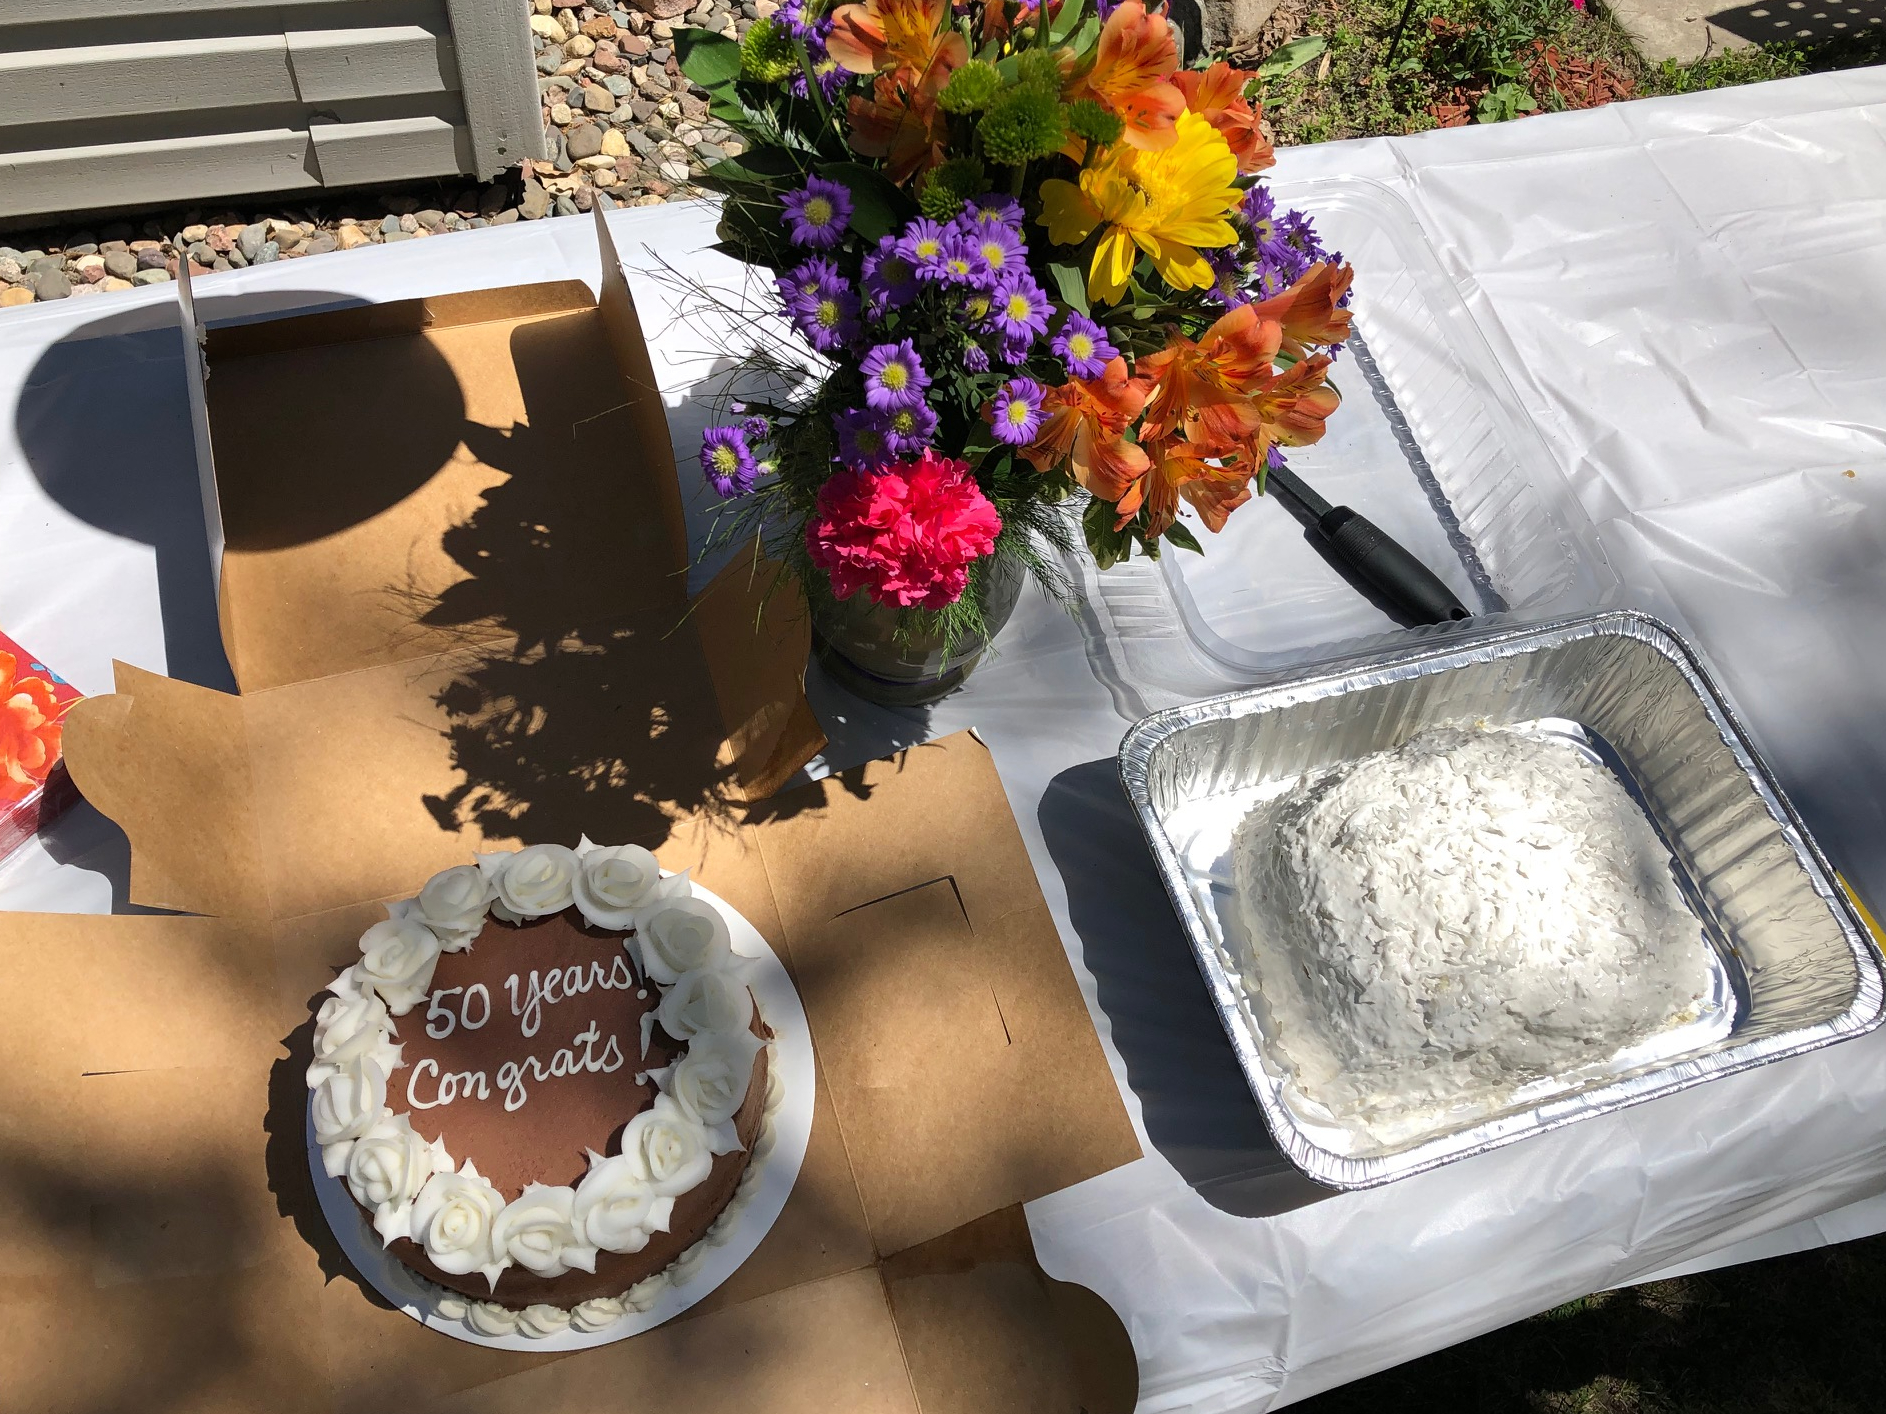 50 year cakes and flowers